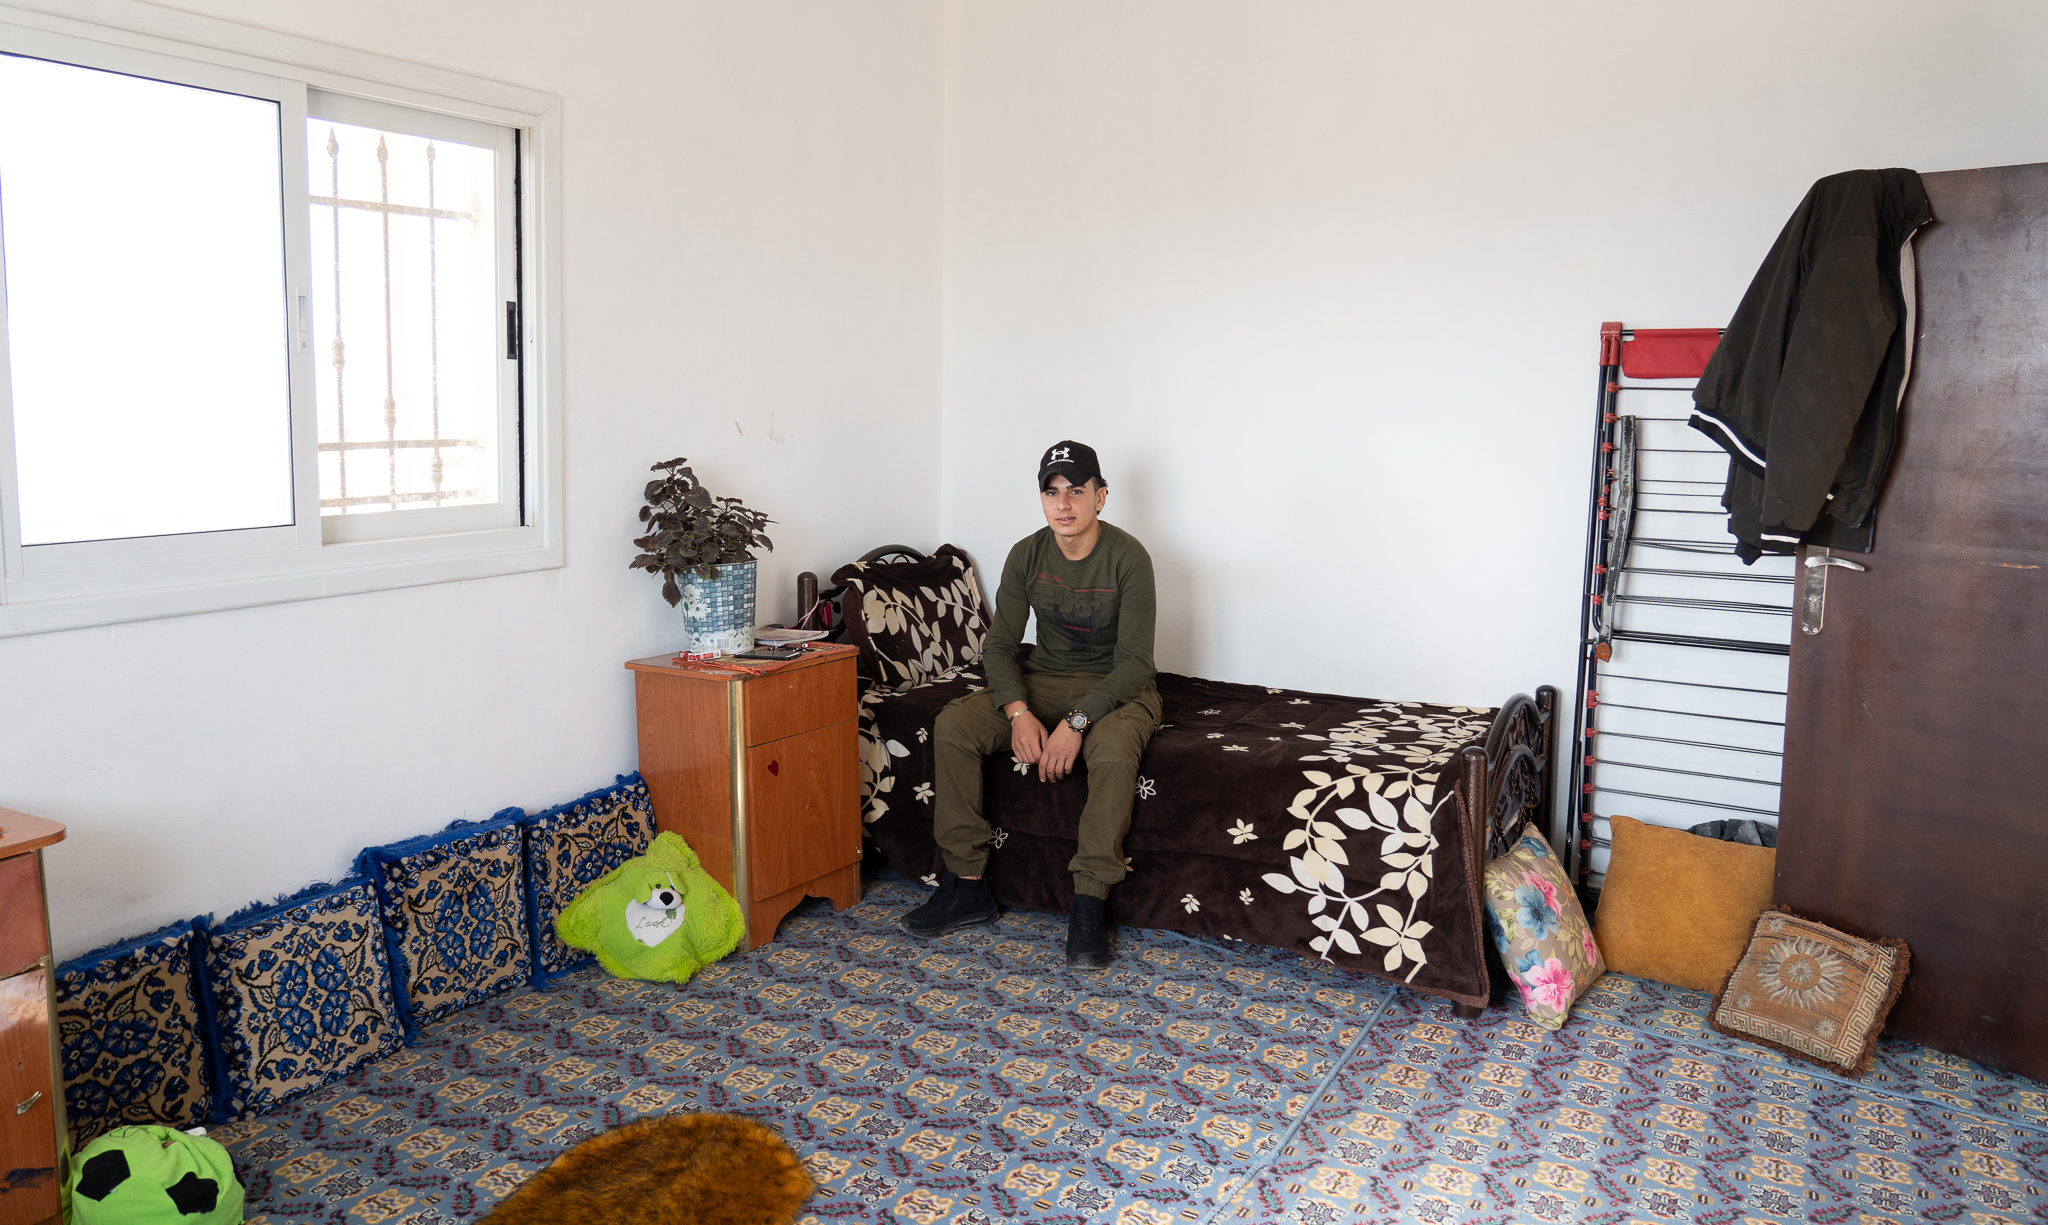 Ismail T. was asleep in his bedroom when Israeli forces raided his home and arrested him on January 7, 2019. (Photo: DCIP)